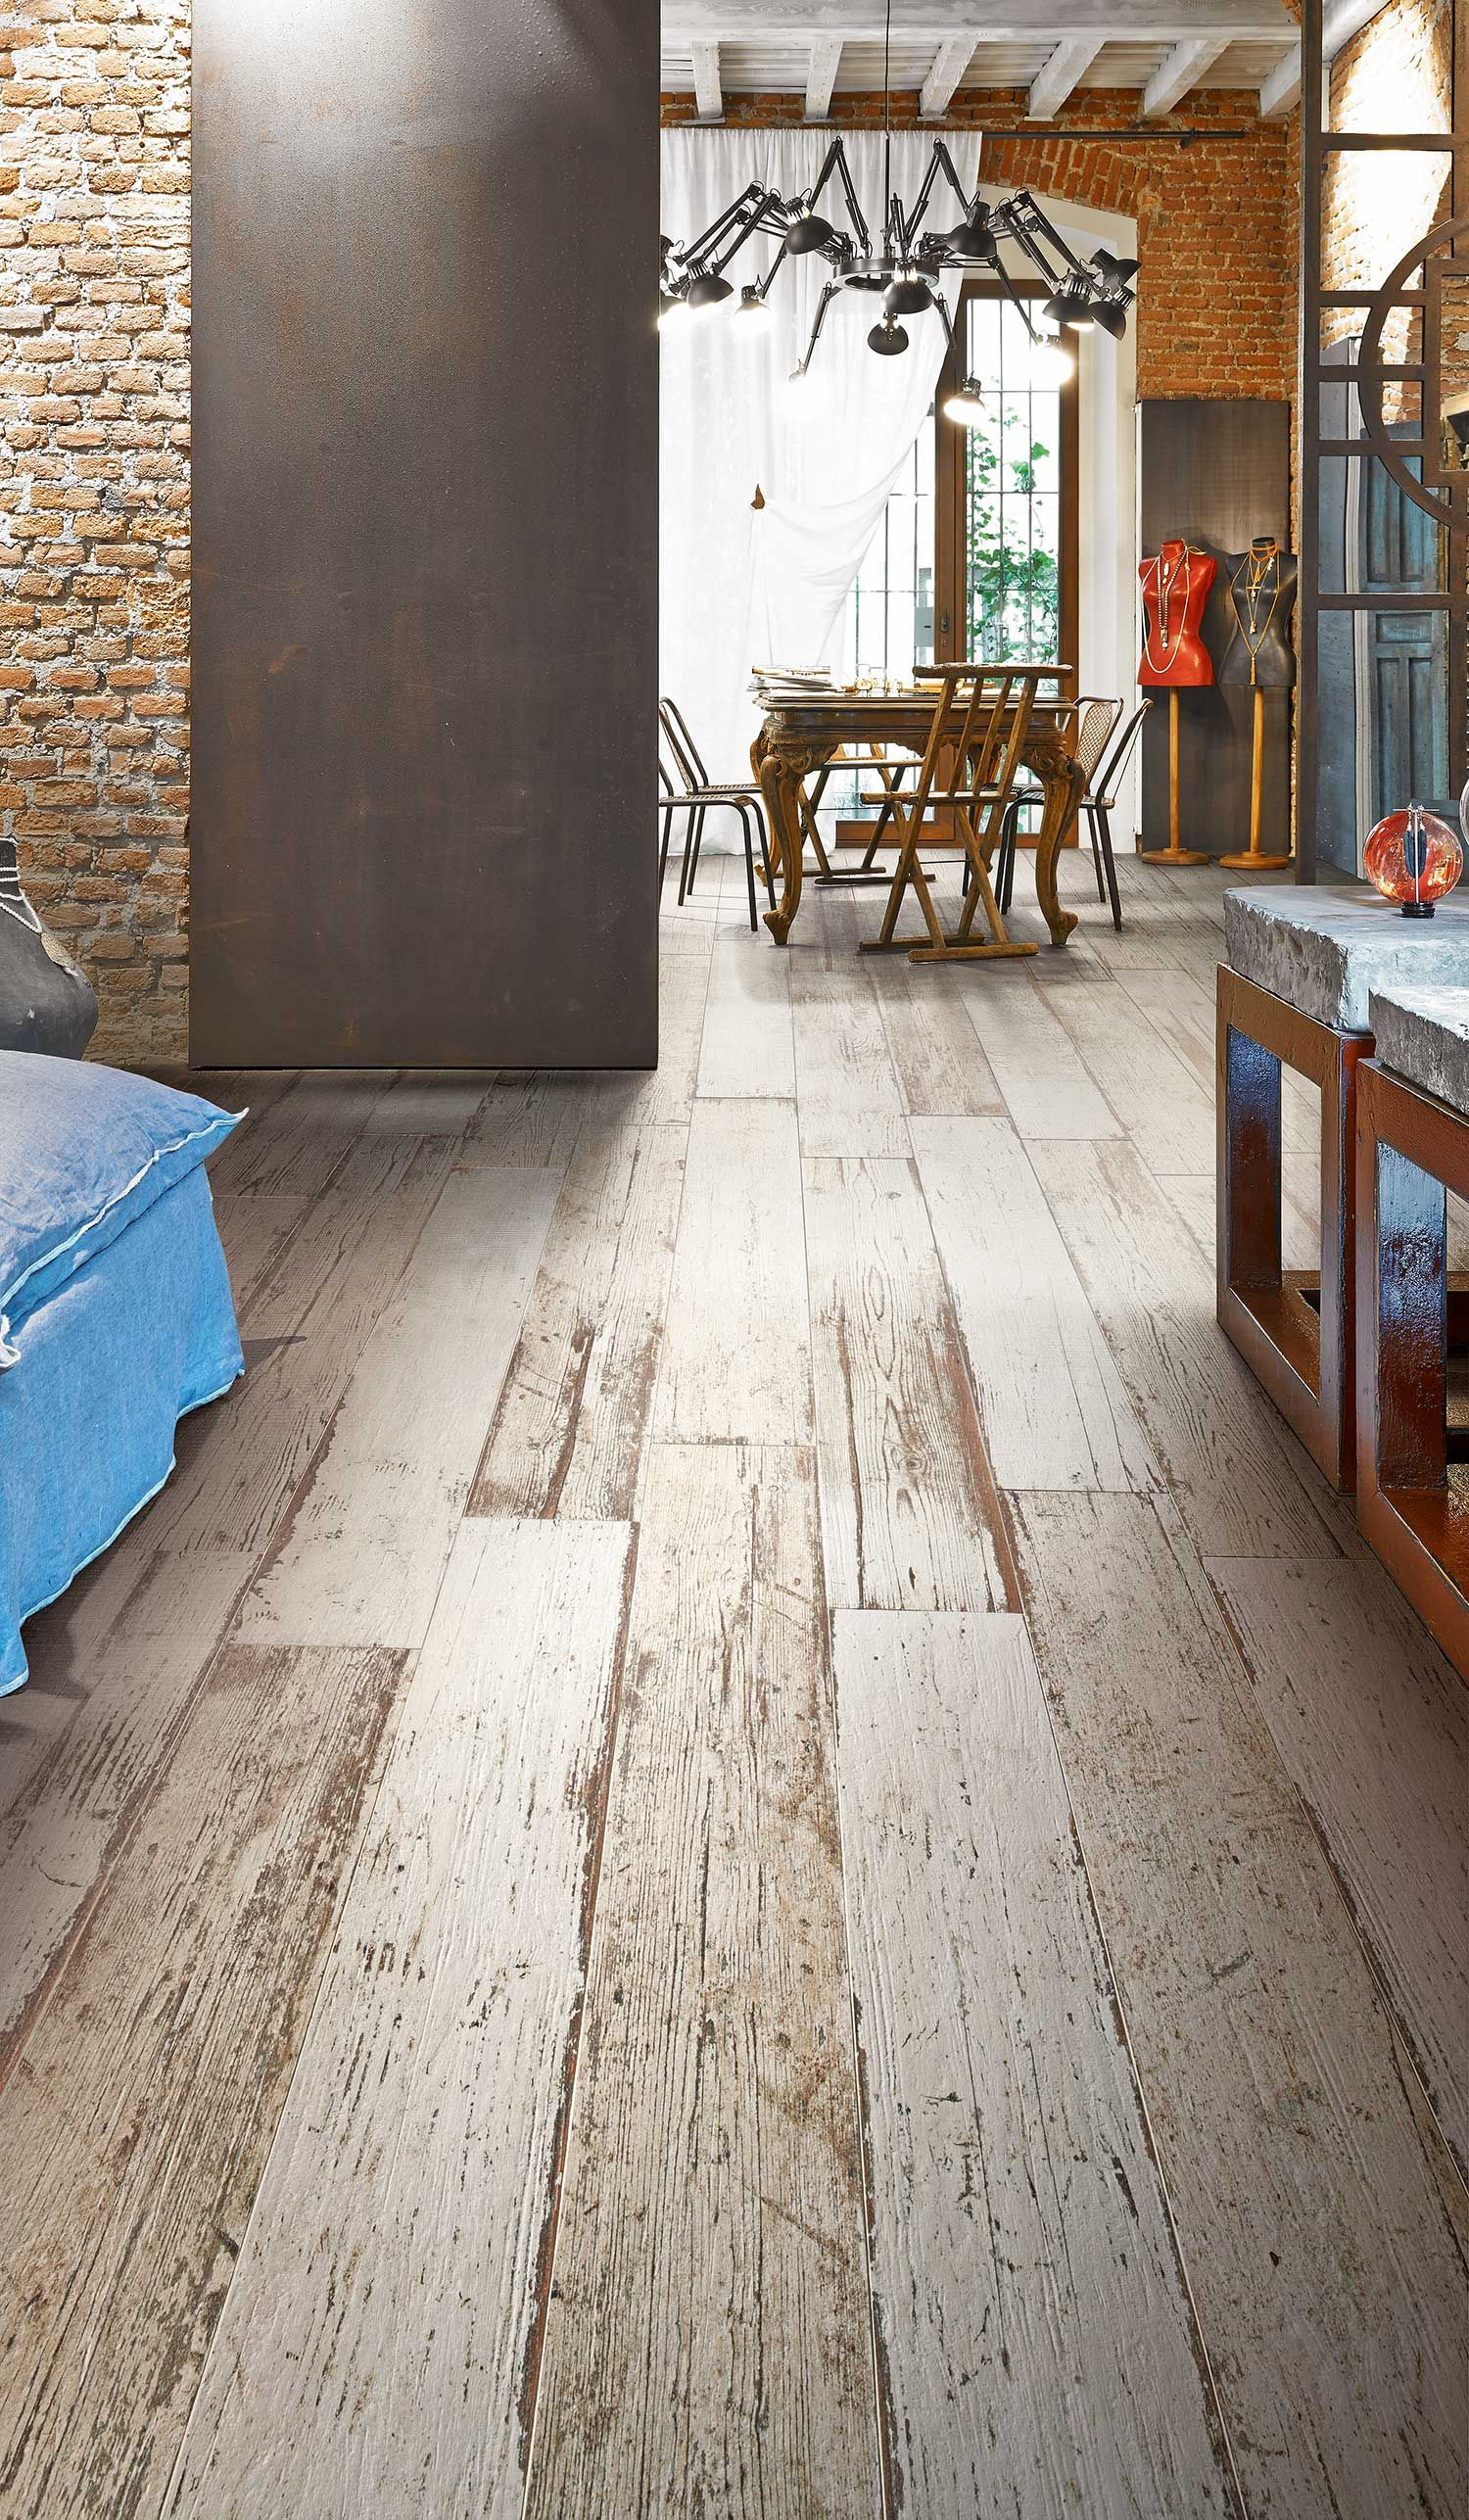 Blendart italian floor wall tile click on the image to visit give your floor a touch of wood with blendart tiles buy floor tiles with unmatched quality and authentic at uk tile shop for more info visit our website dailygadgetfo Images